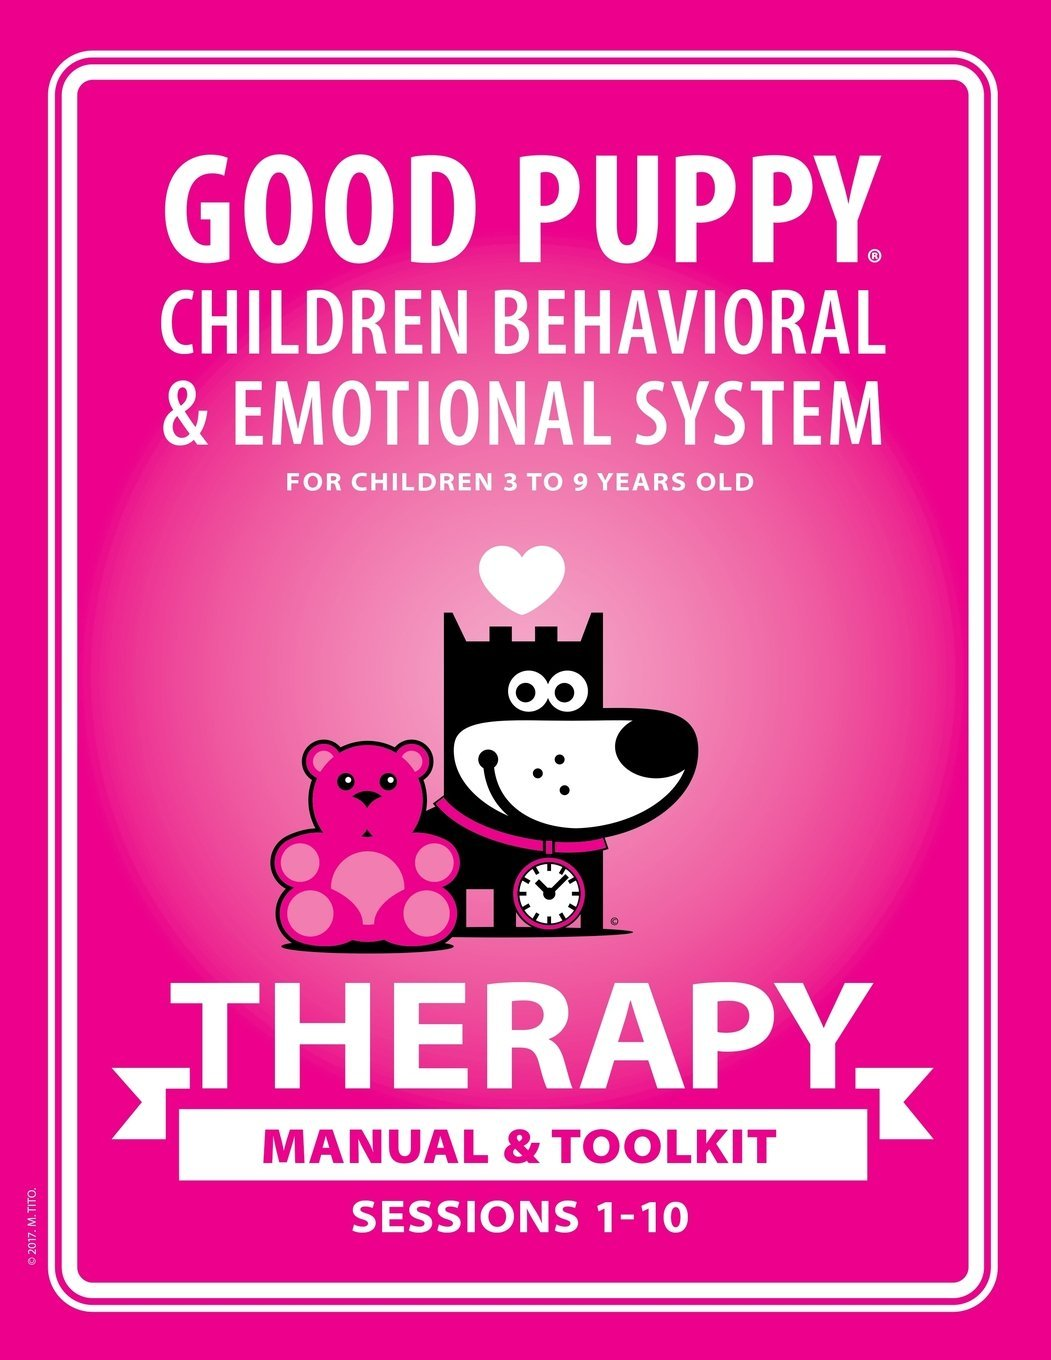 Good Puppy Children Behavioral & Emotional System . Therapy . Manual & Toolkit . Sessions 1-10 ebook